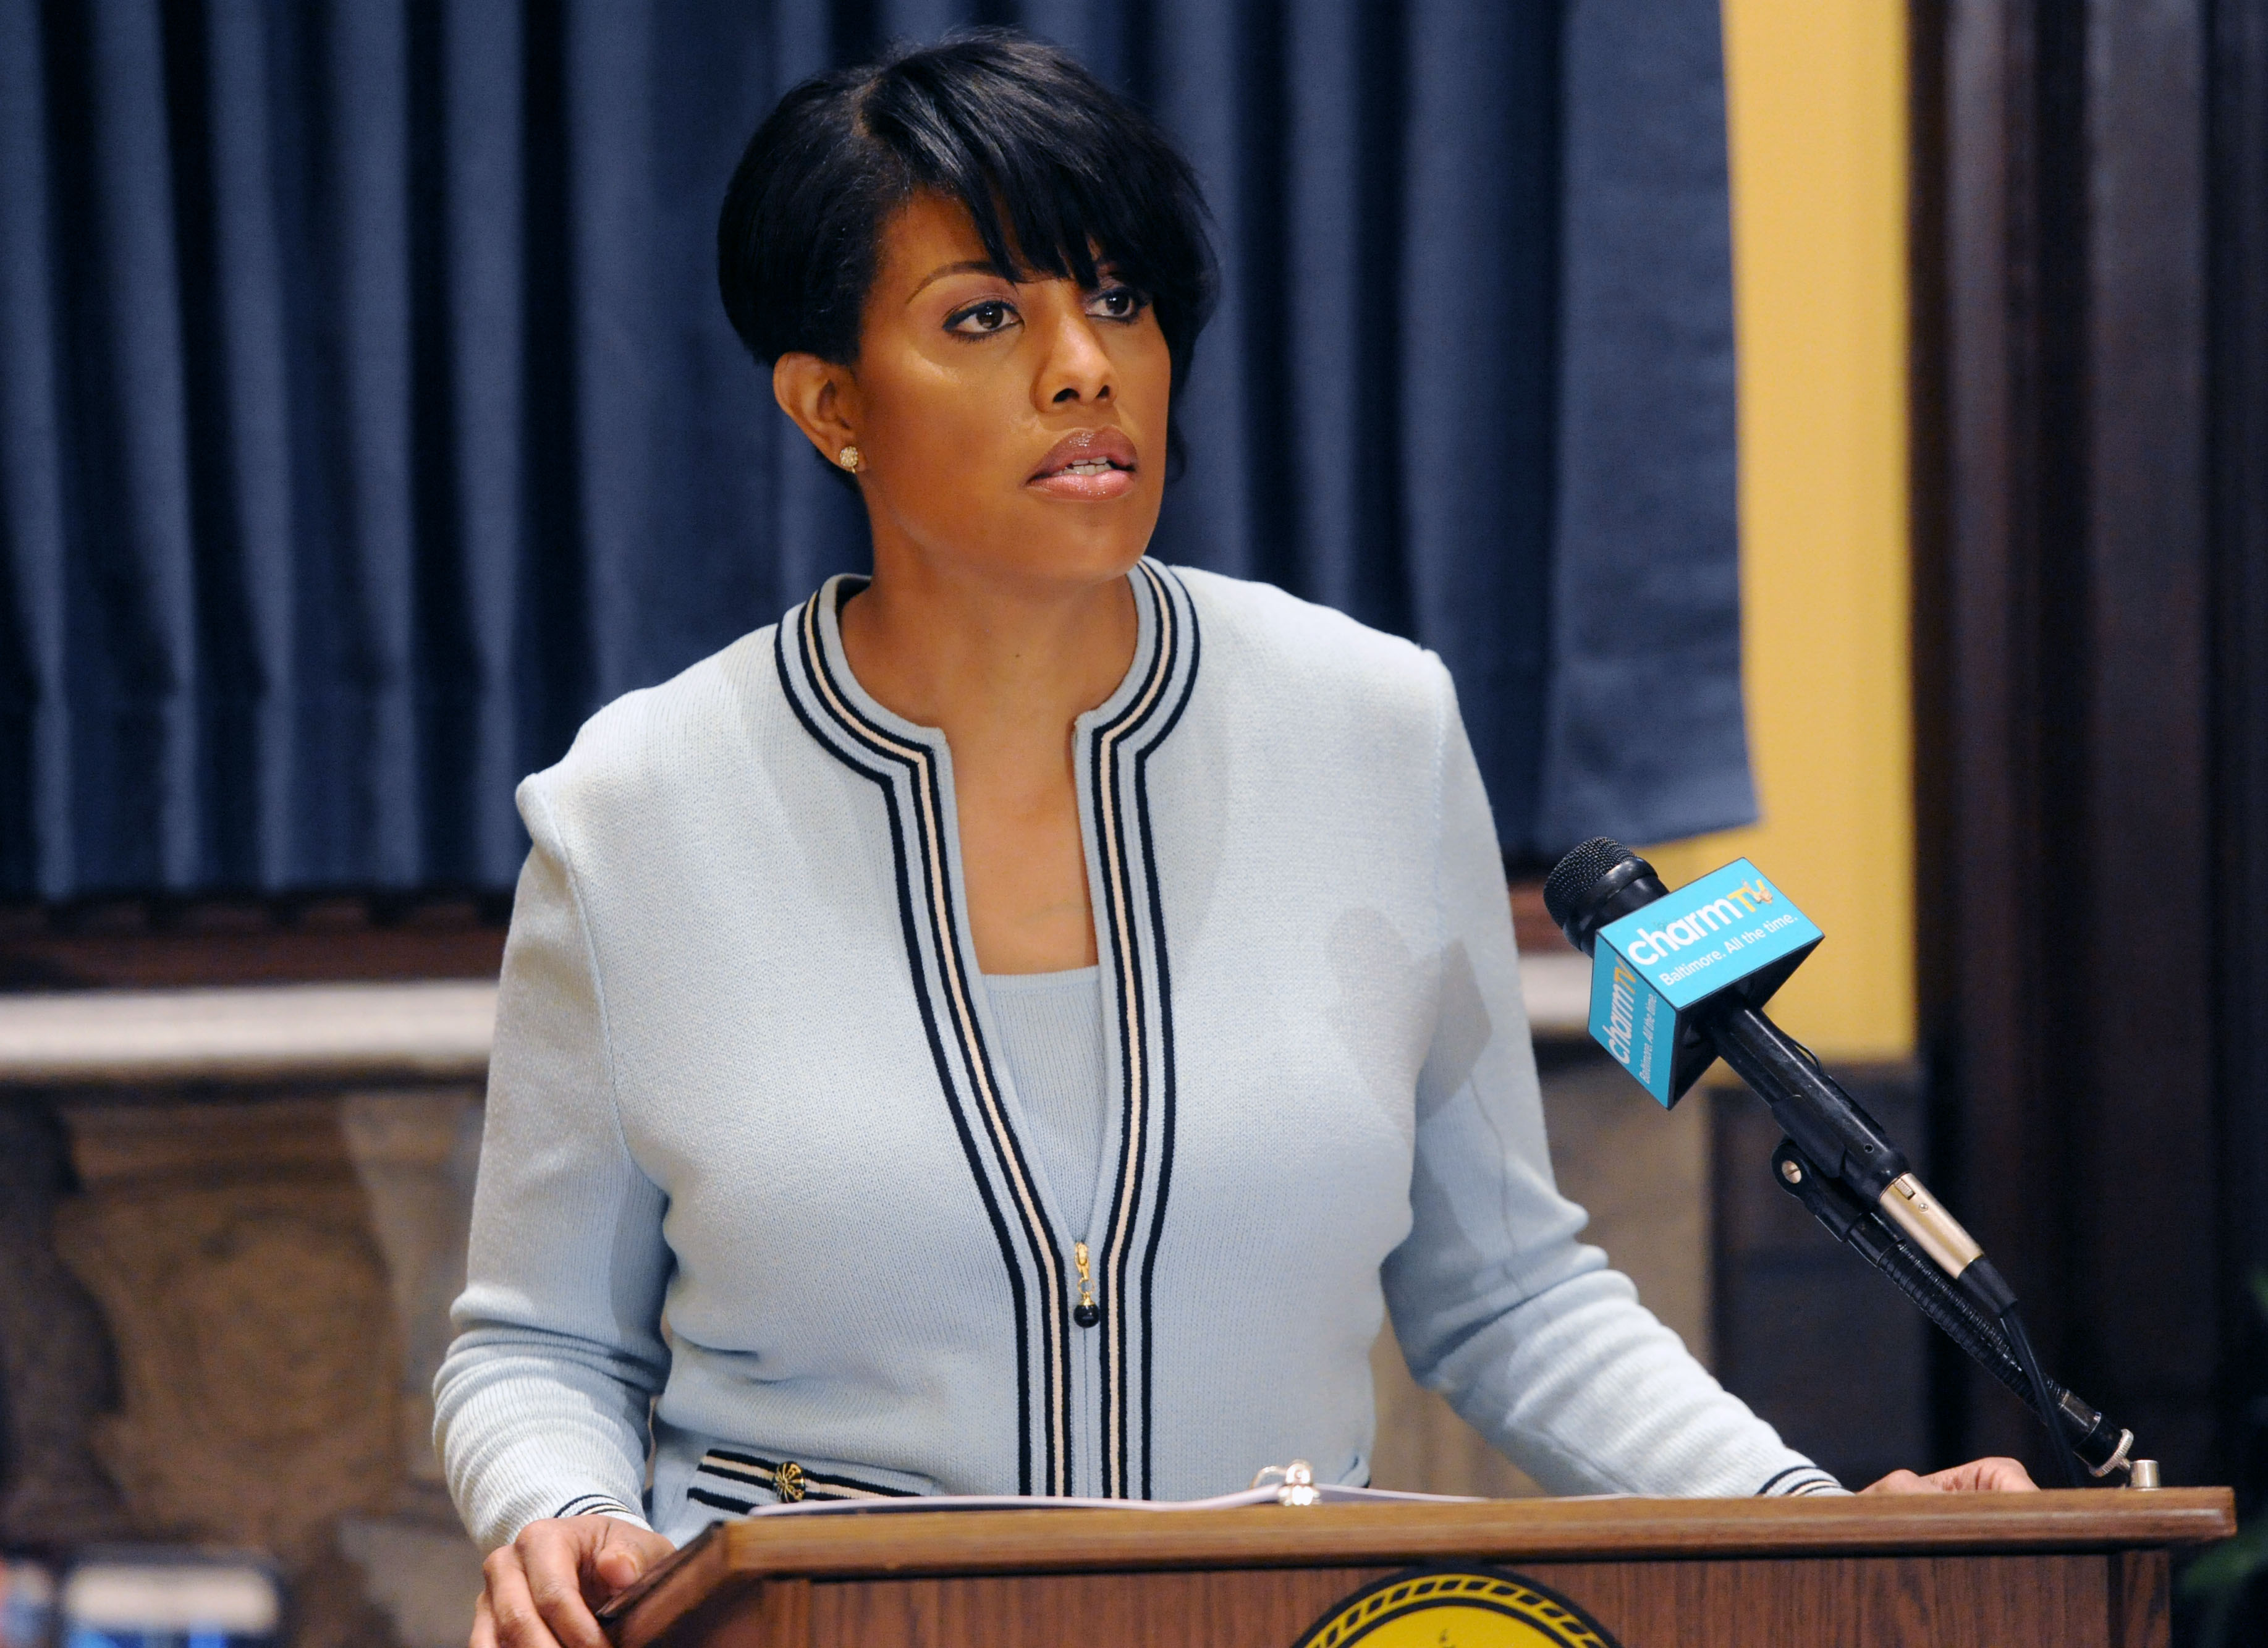 A new report suggests that Baltimore won't fully equip its police officers with body cameras for four years. Mayor Stephanie Rawlings-Blake, shown here at a May 6, 2015, news conference, says she wants them implemented by 2016.